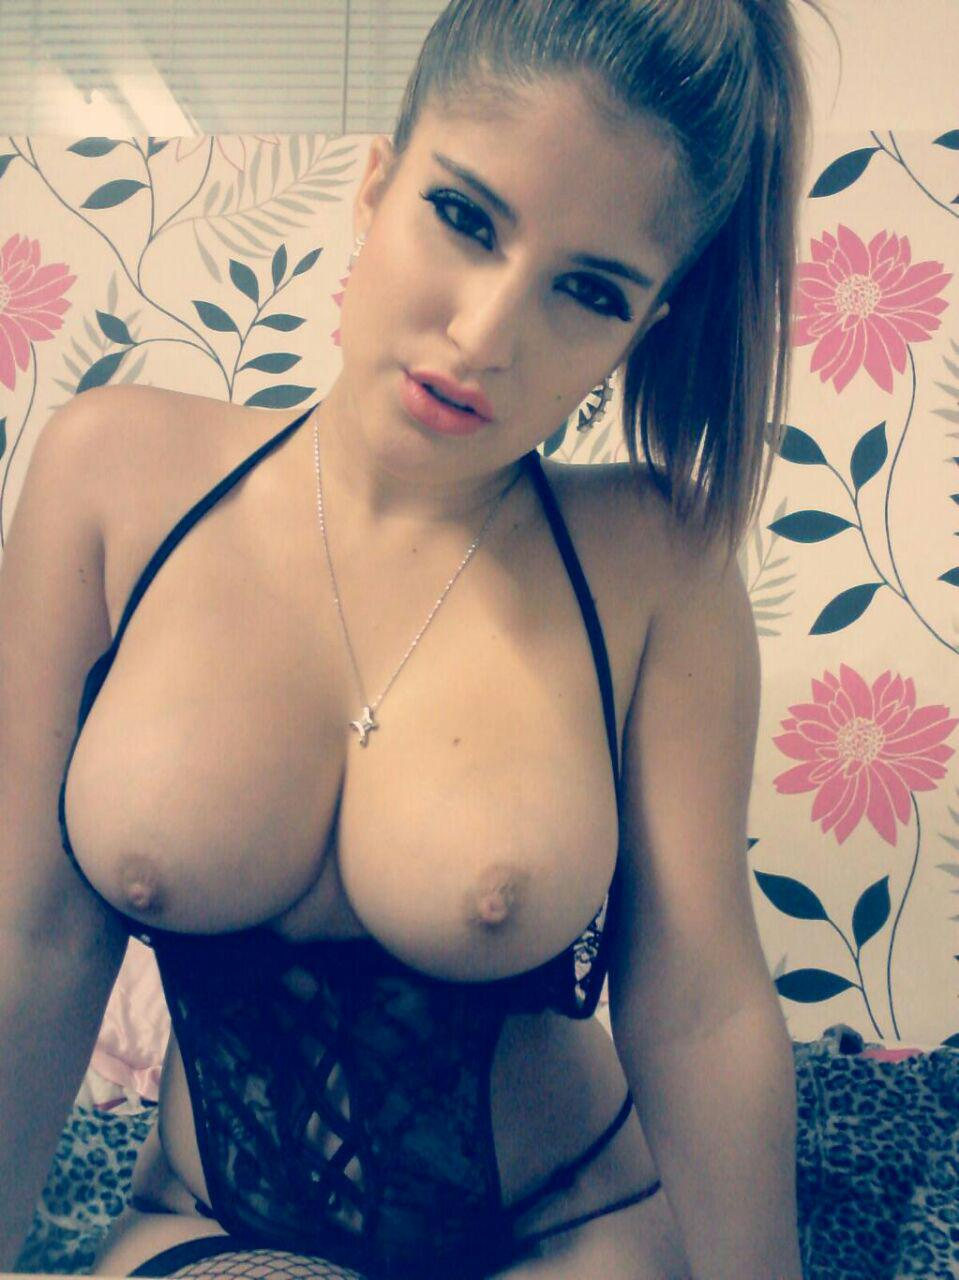 VIDEO GRATUITE X ESCORT SAINT OUEN L AUMONE